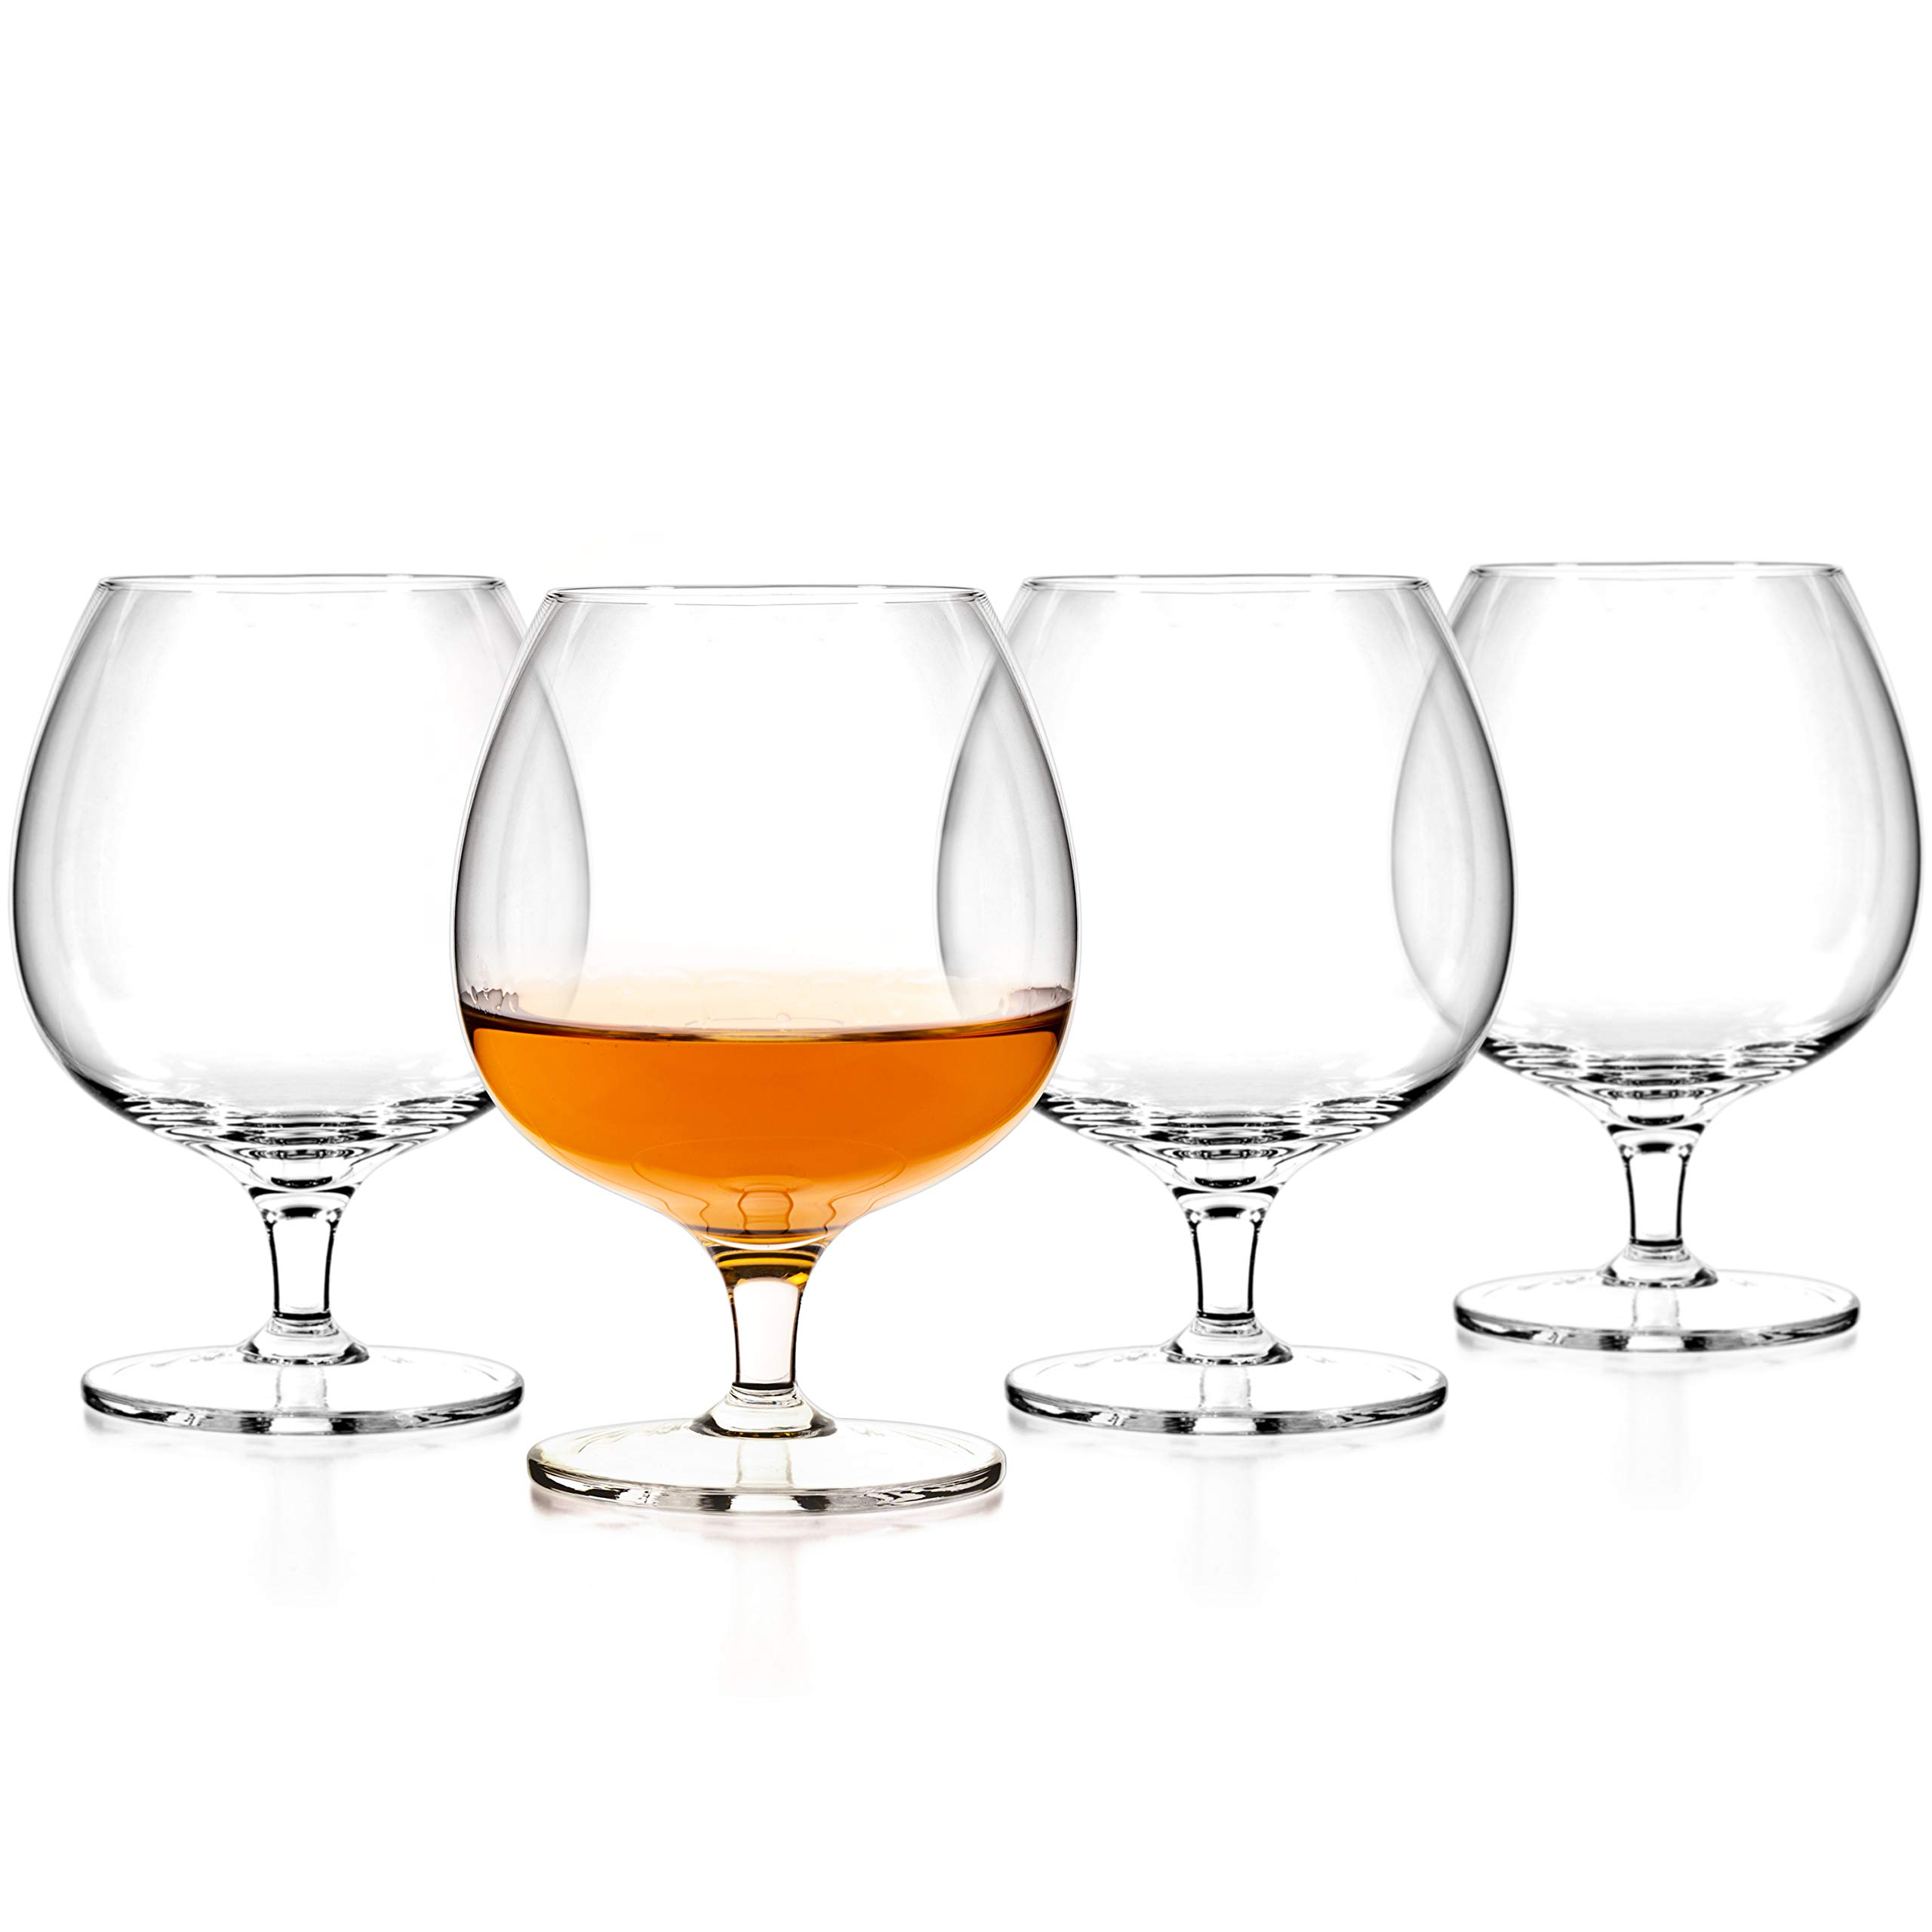 Luxbe - Cognac & Brandy Crystal Small Glasses Snifter, Set of 4 - Handcrafted - 100% Lead-Free Crystal Glass - Great for Spirits Drinks - 12-ounce by Luxbe